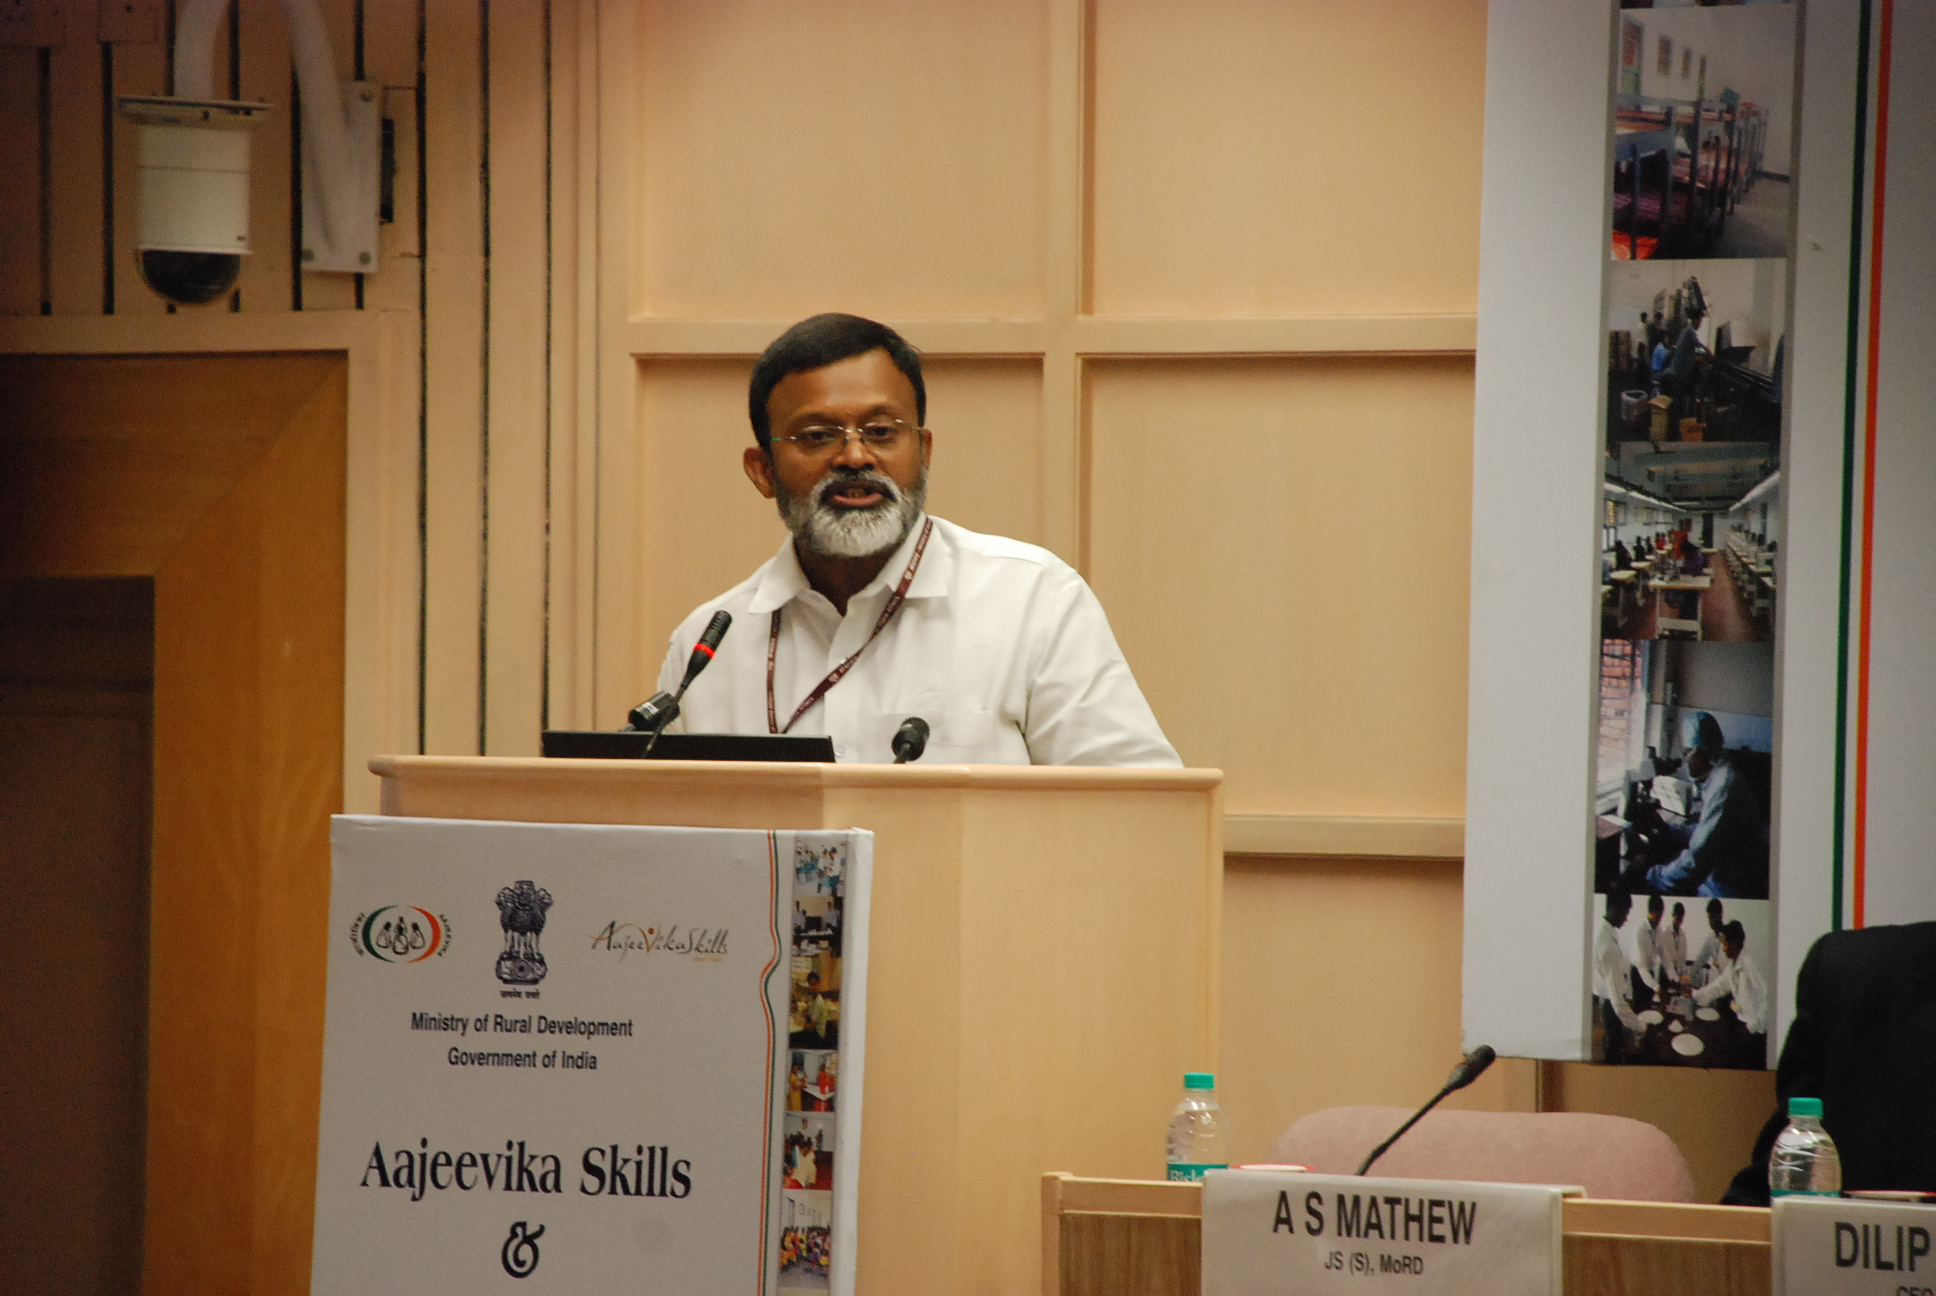 Dr. Santhosh Mathew, JS, (Skills) addressing the gathering